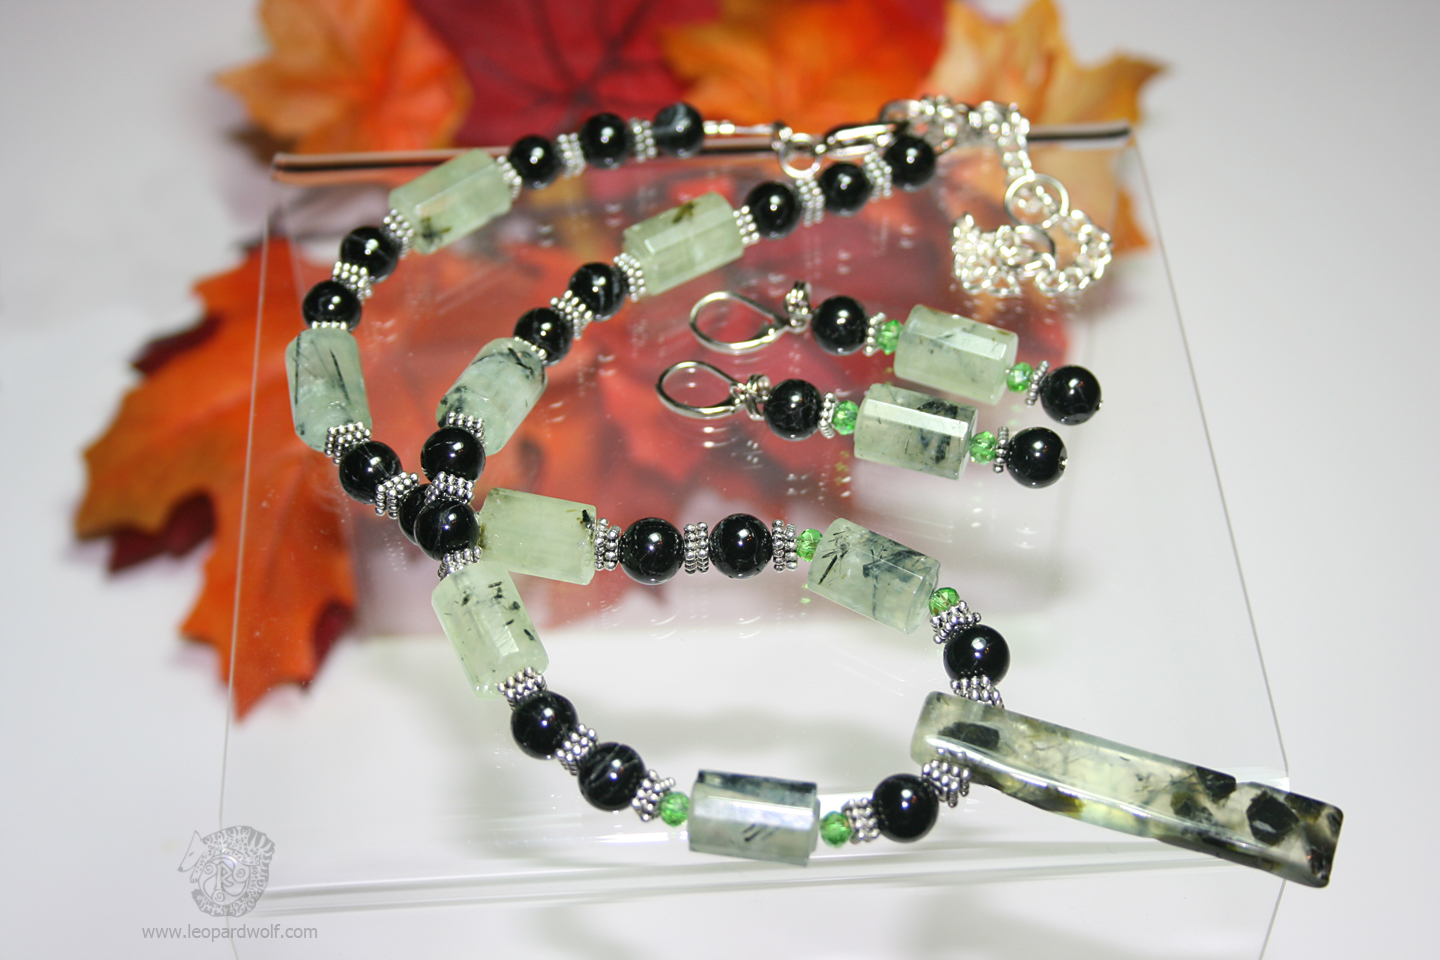 Prehnite And Black Tourmaline Jewelry Set Pt 2 by leopardwolf